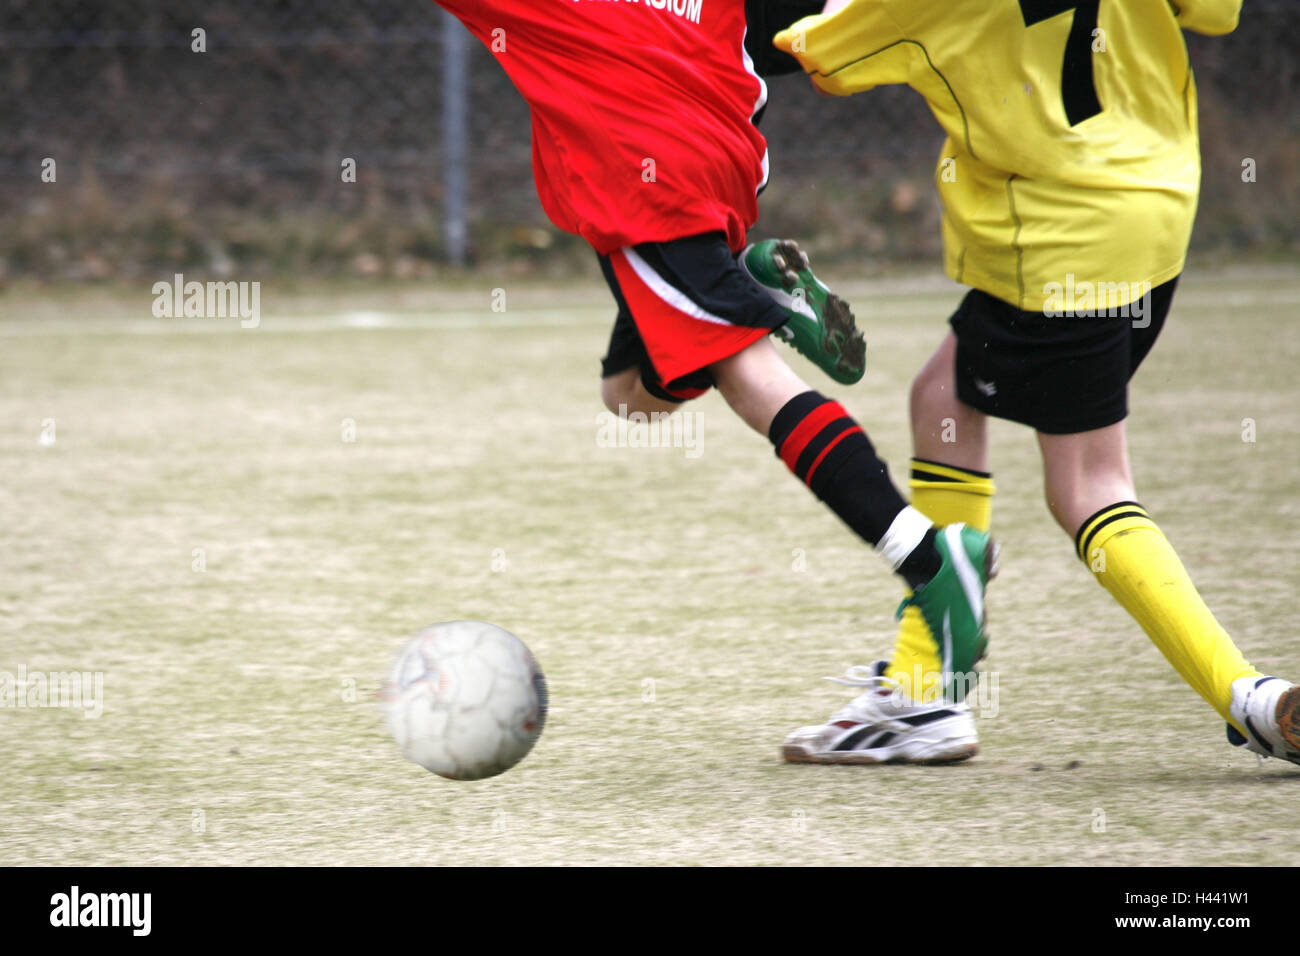 Football, boy, game scene, foul, detail, schoolboy's tournament, tournament, art turf, defence, foul, play, - Stock Image